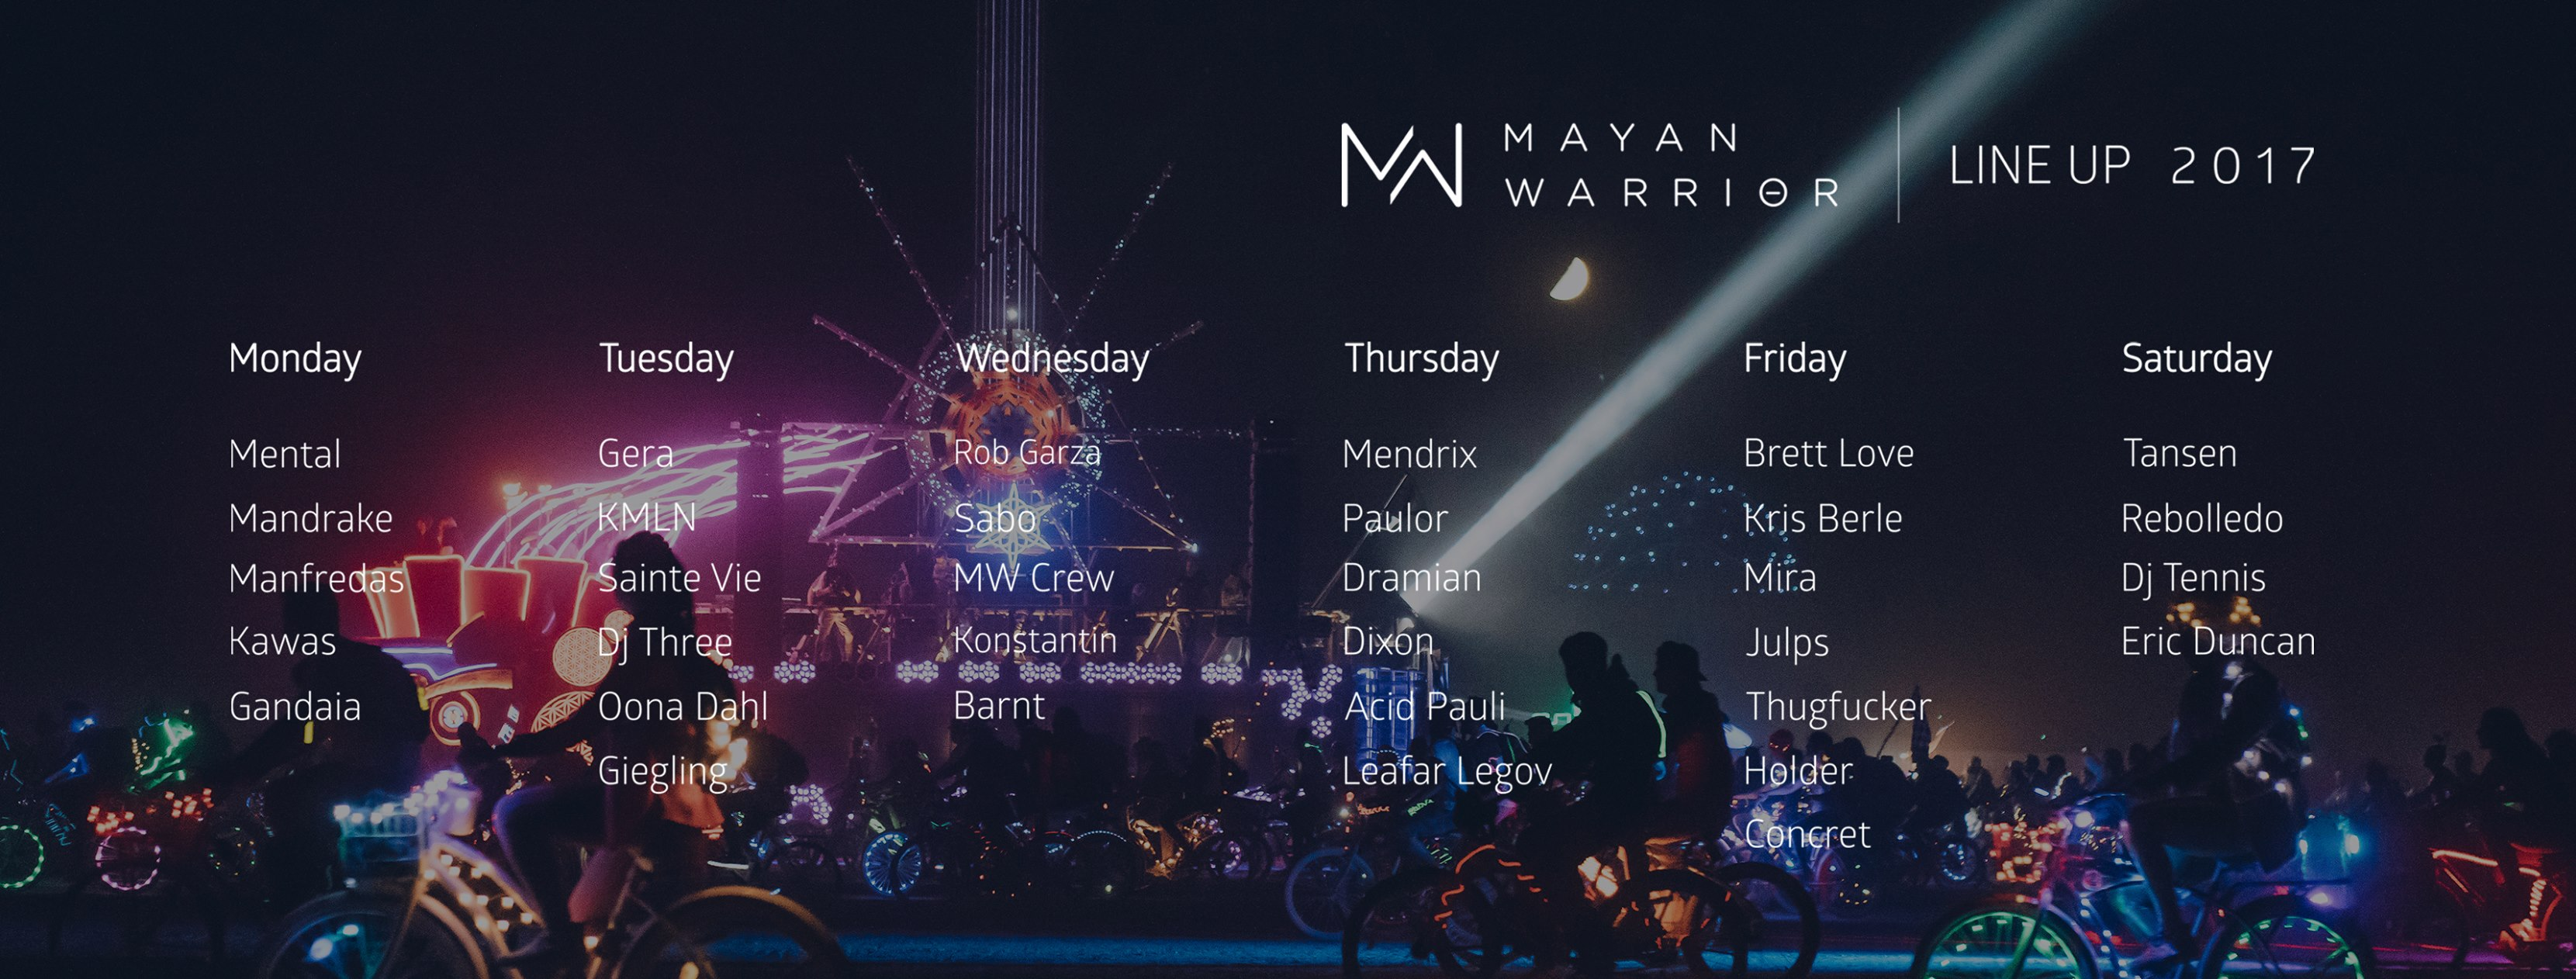 Line Up Mayan Warrior 2017